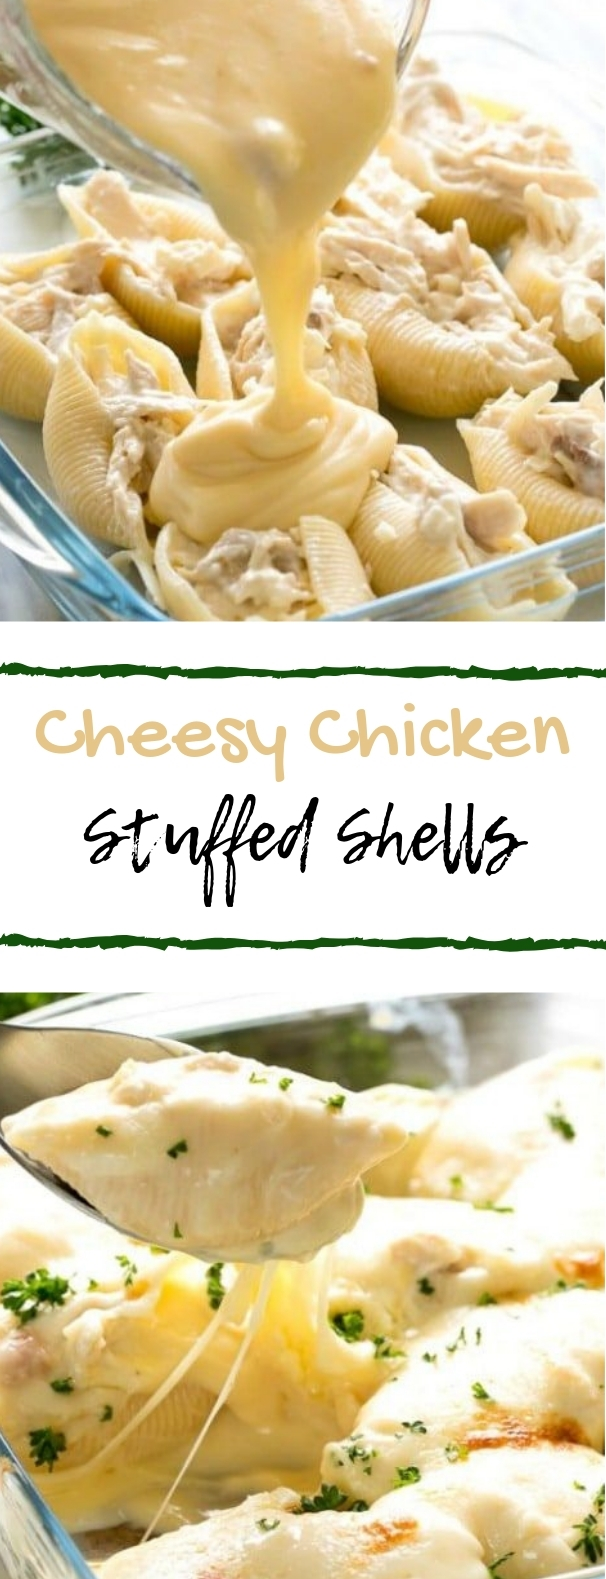 Cheesy Chicken Stuffed Shells #chicken #dinner